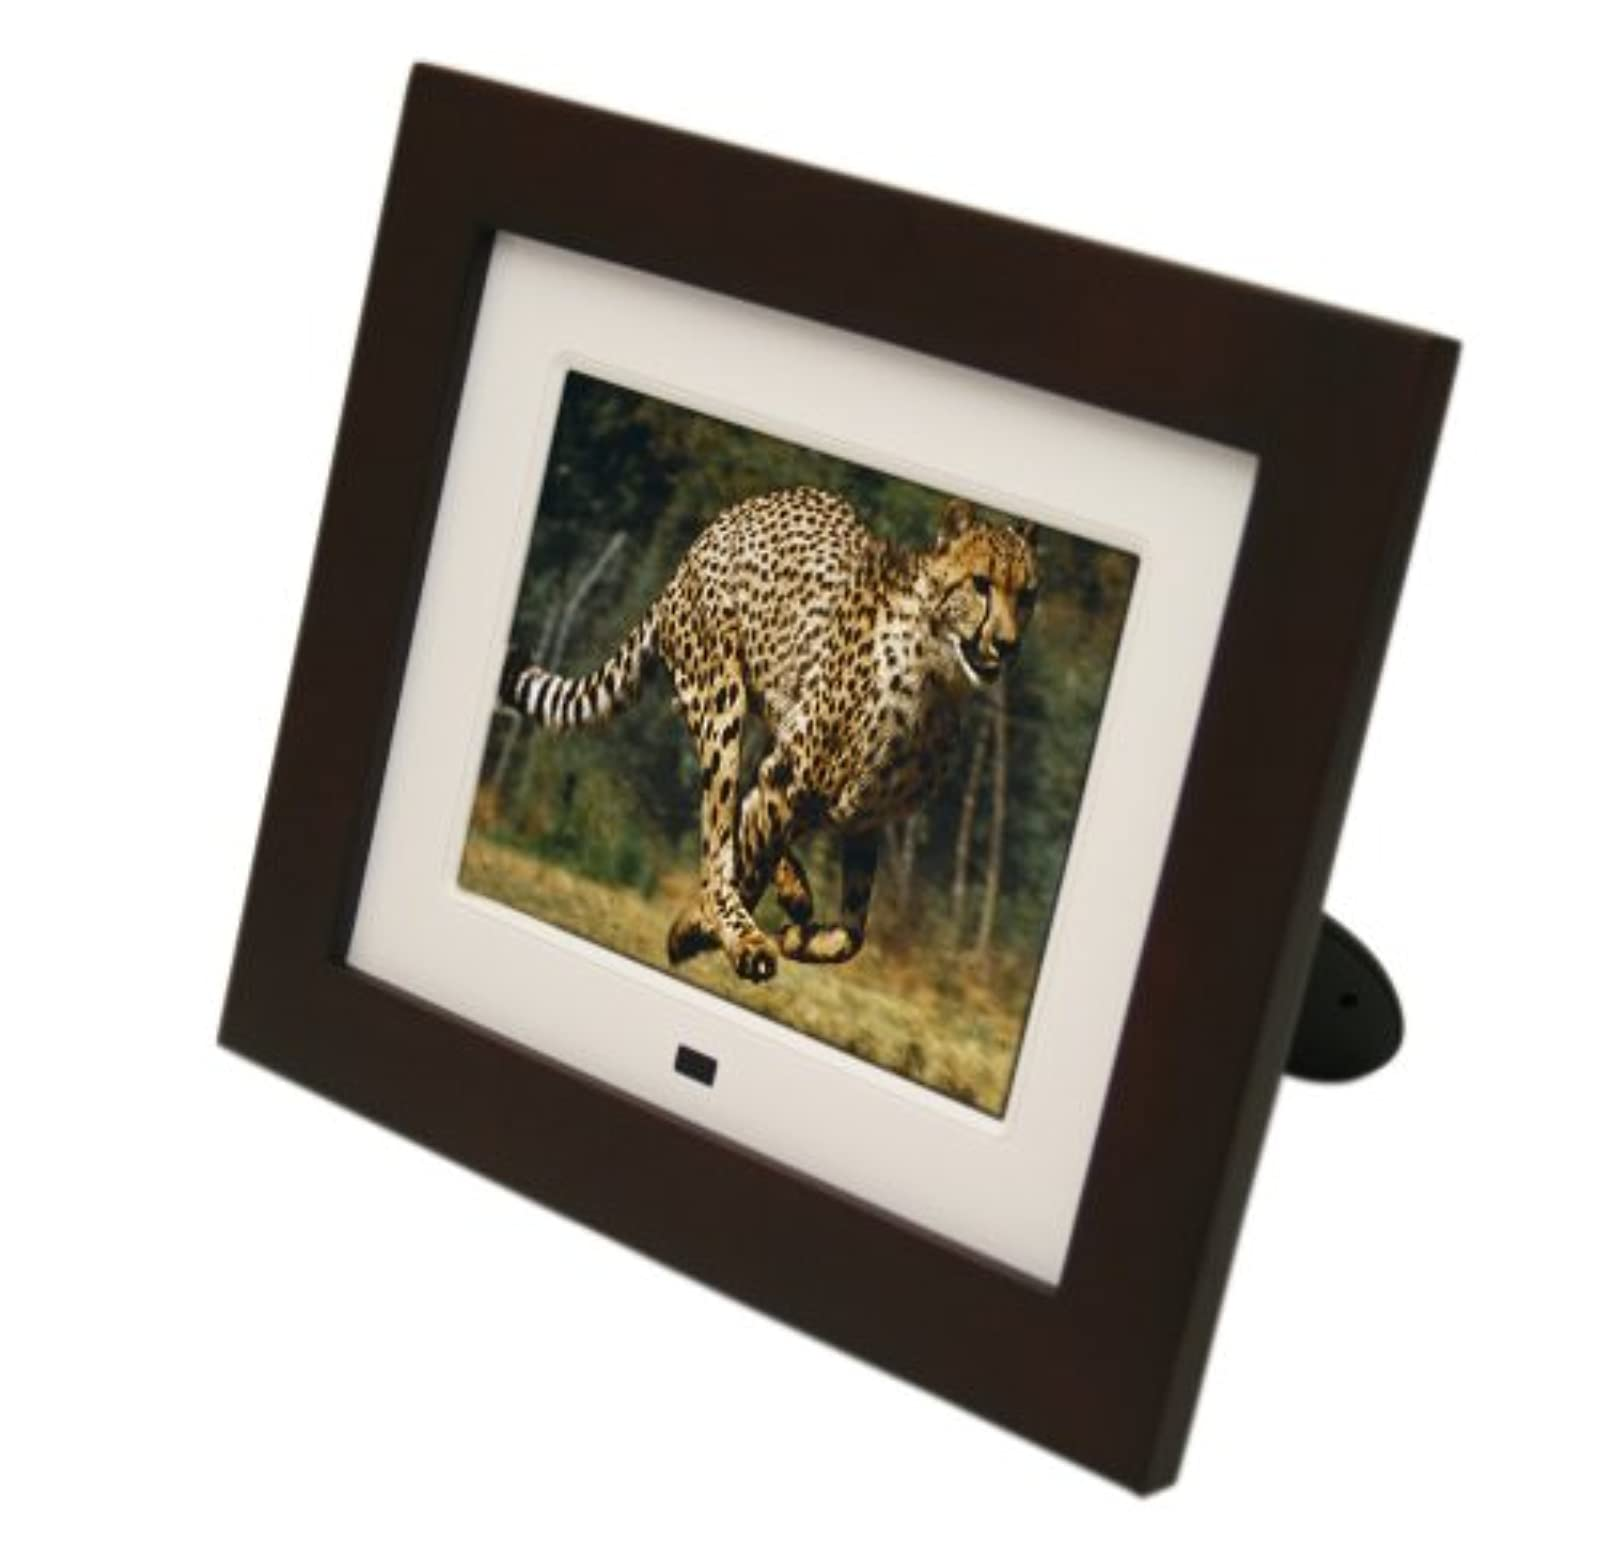 Mustek PF-D853AM 8.0-inch Digital Photo Frame